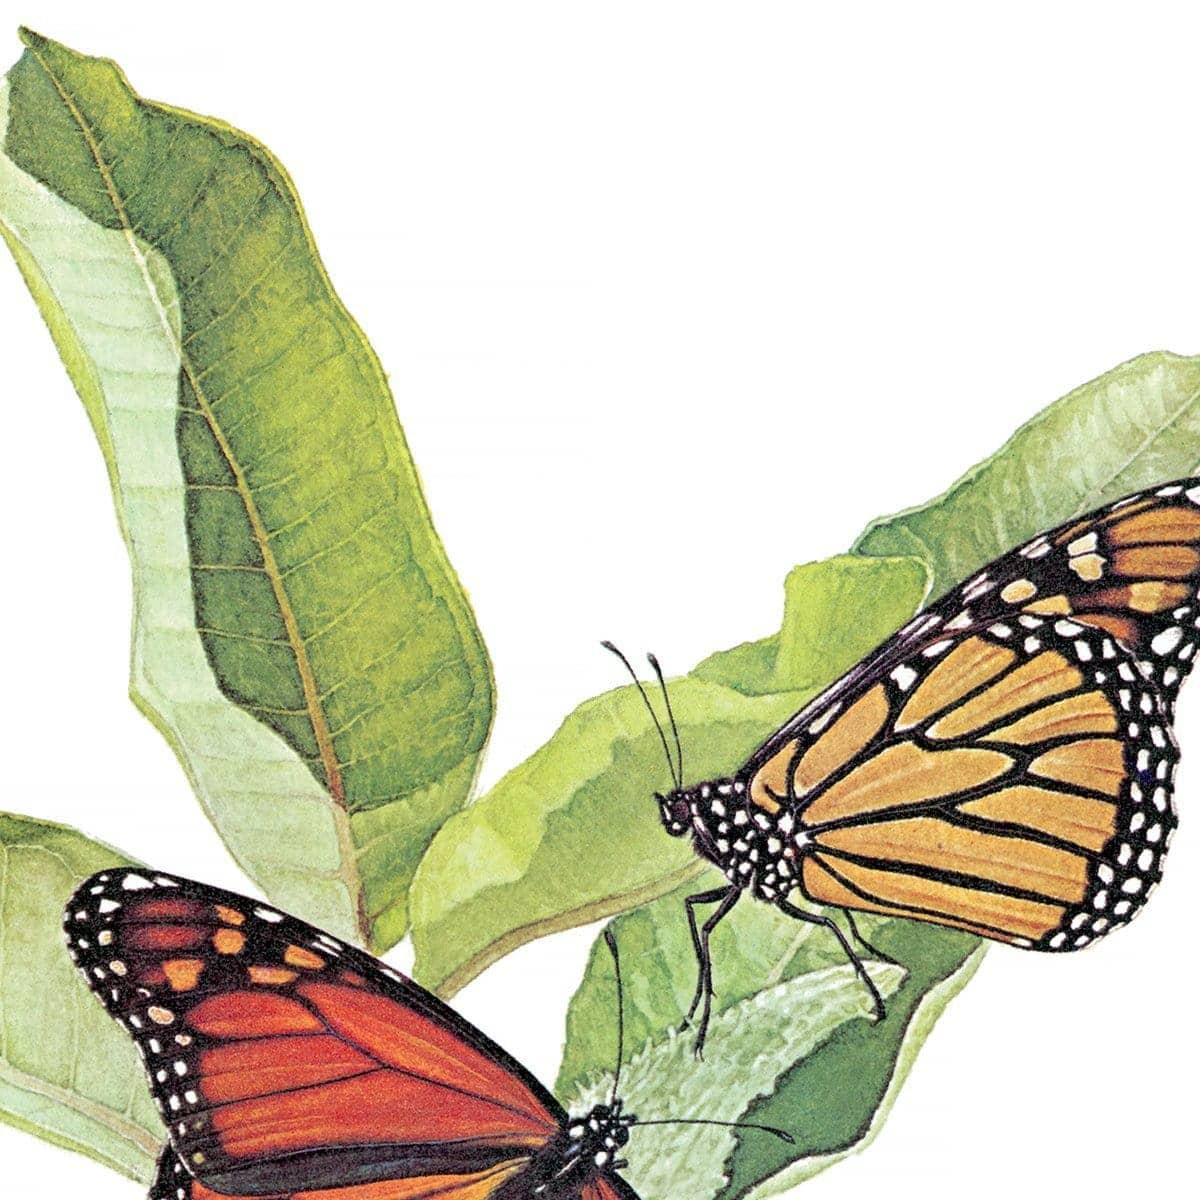 Monarch Butterflies - Art Print by Glen Loates from the Glen Loates Store